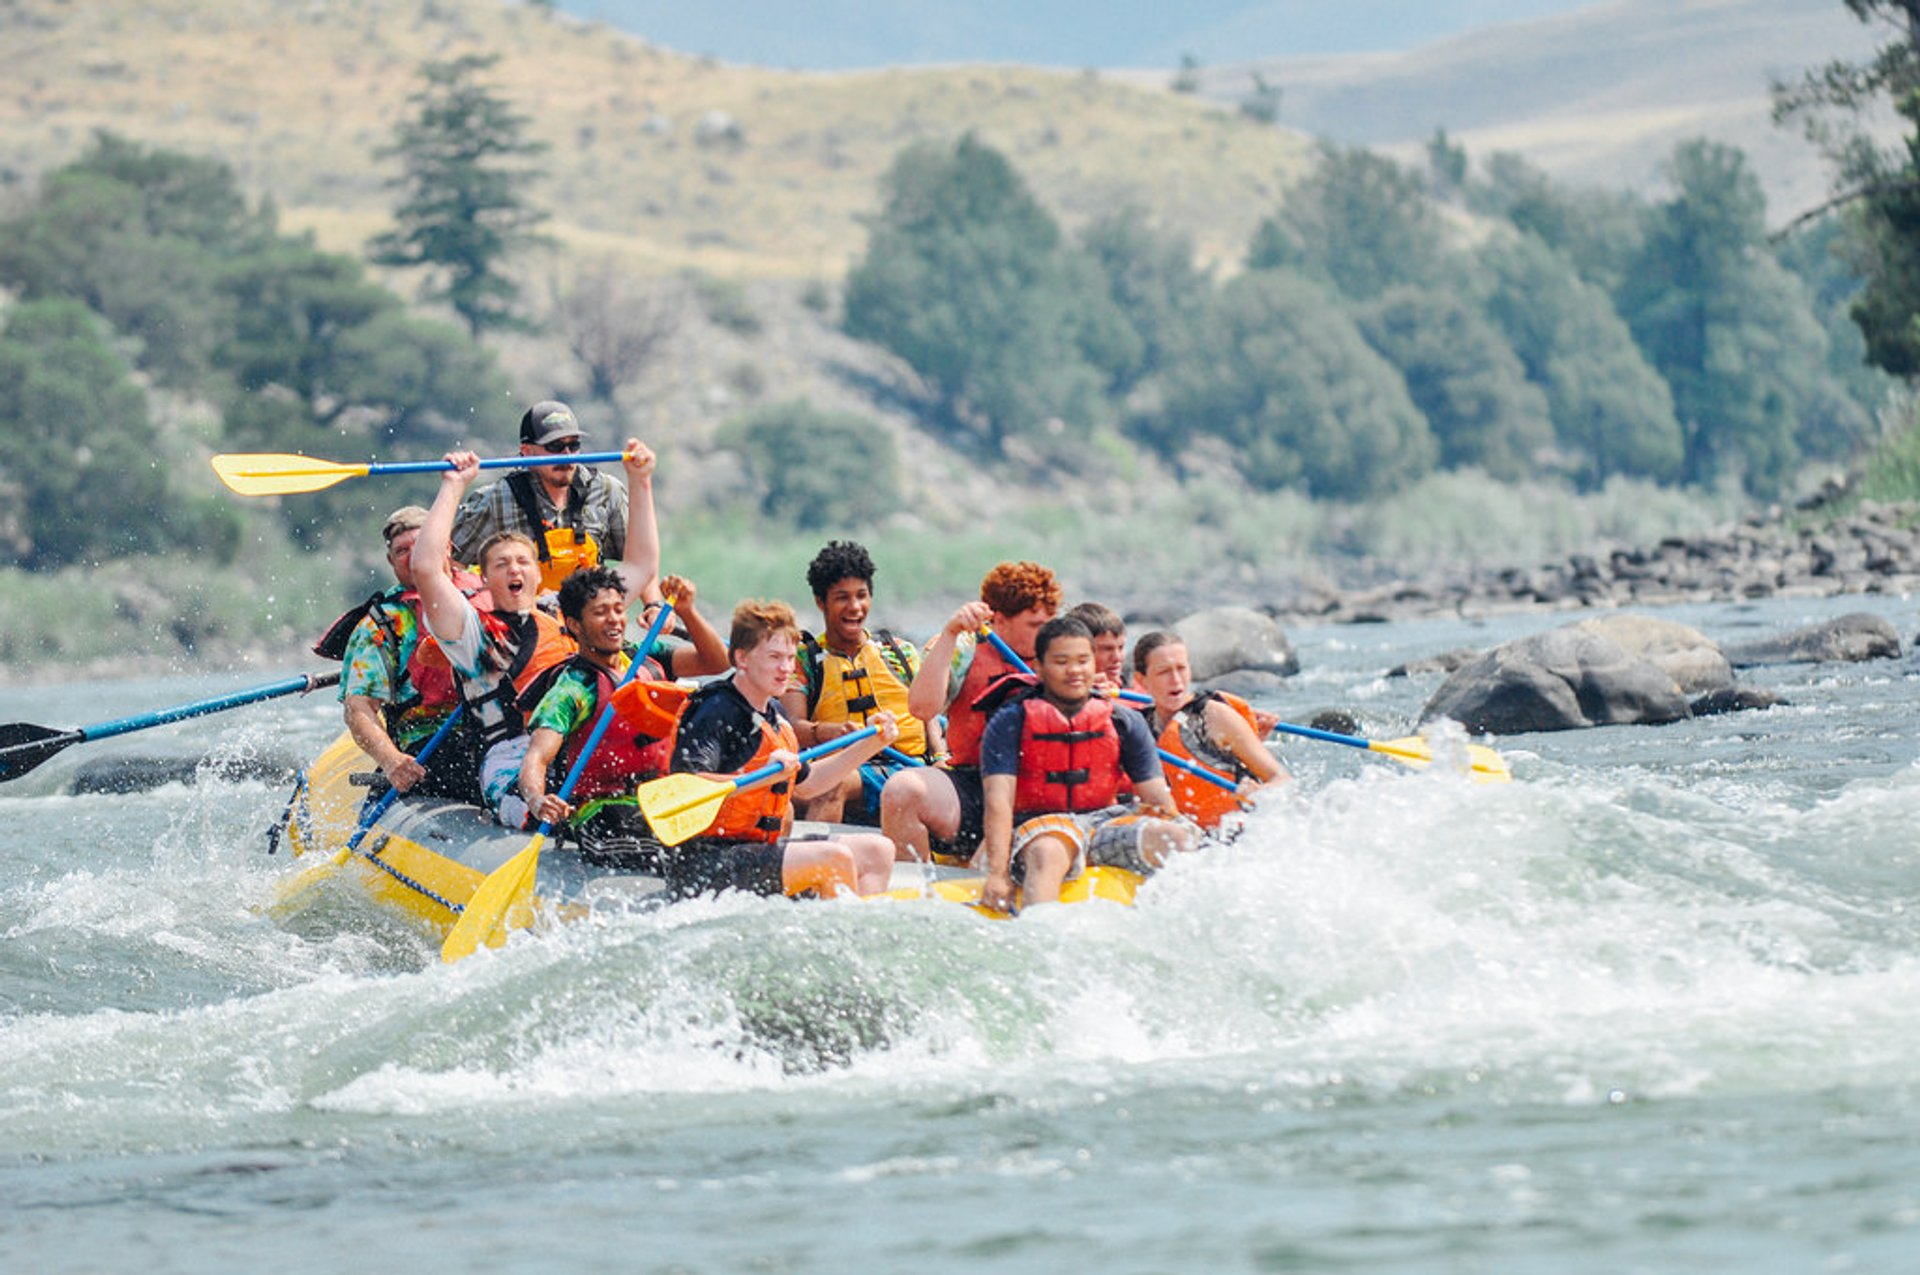 Rafting in Yellowstone National Park 2019 - Best Time